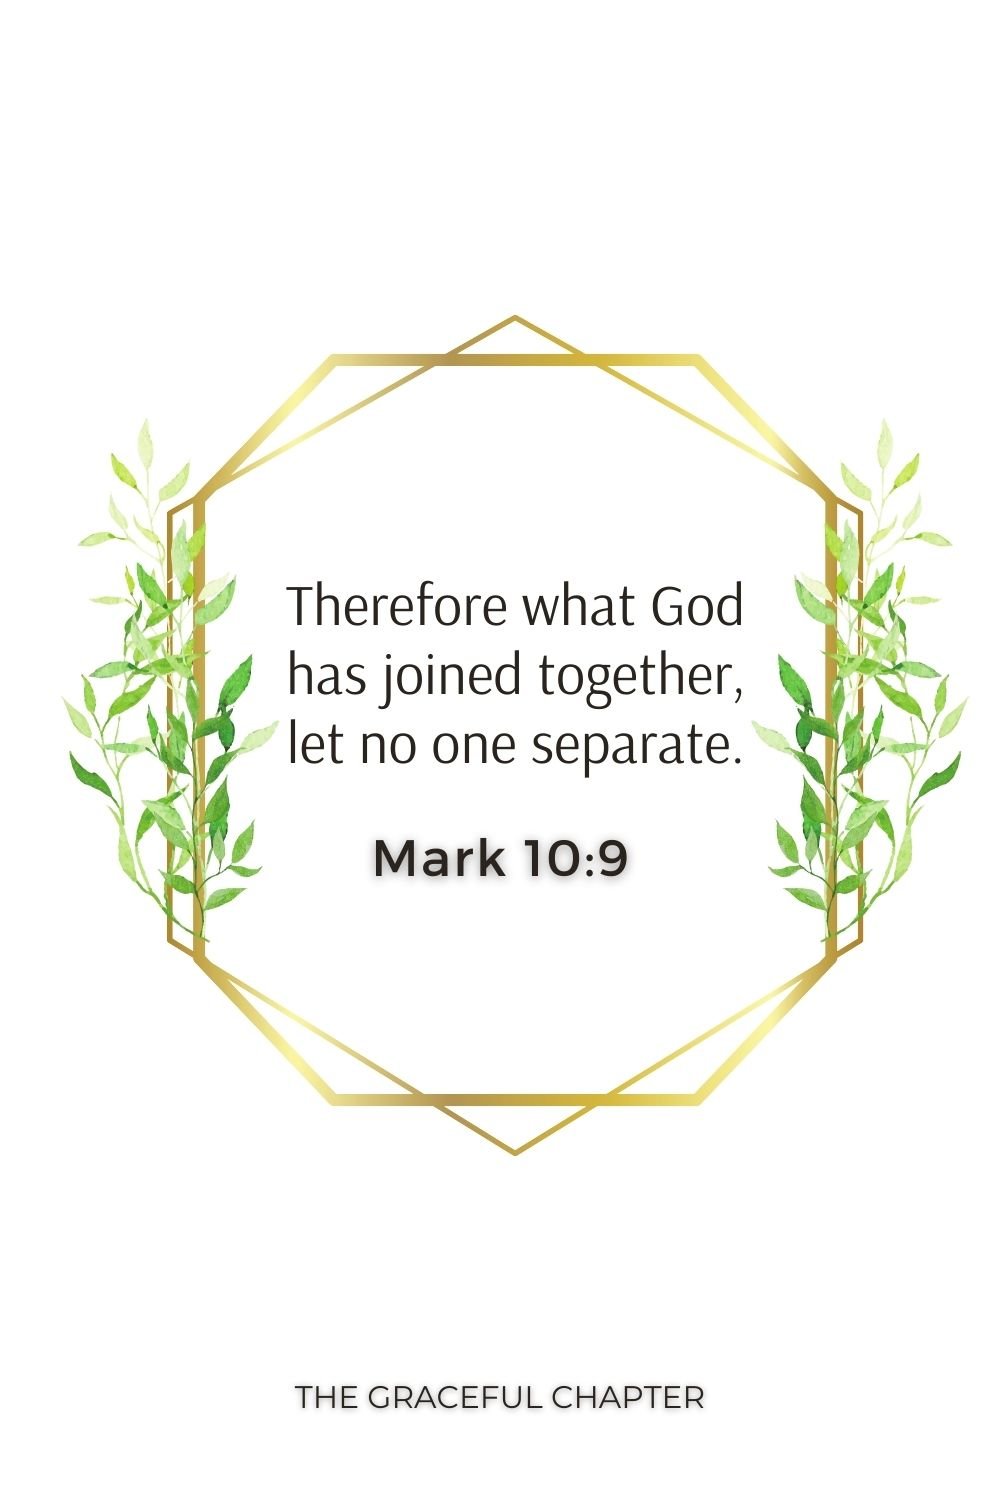 Therefore what God has joined together, let no one separate. Mark 10:9